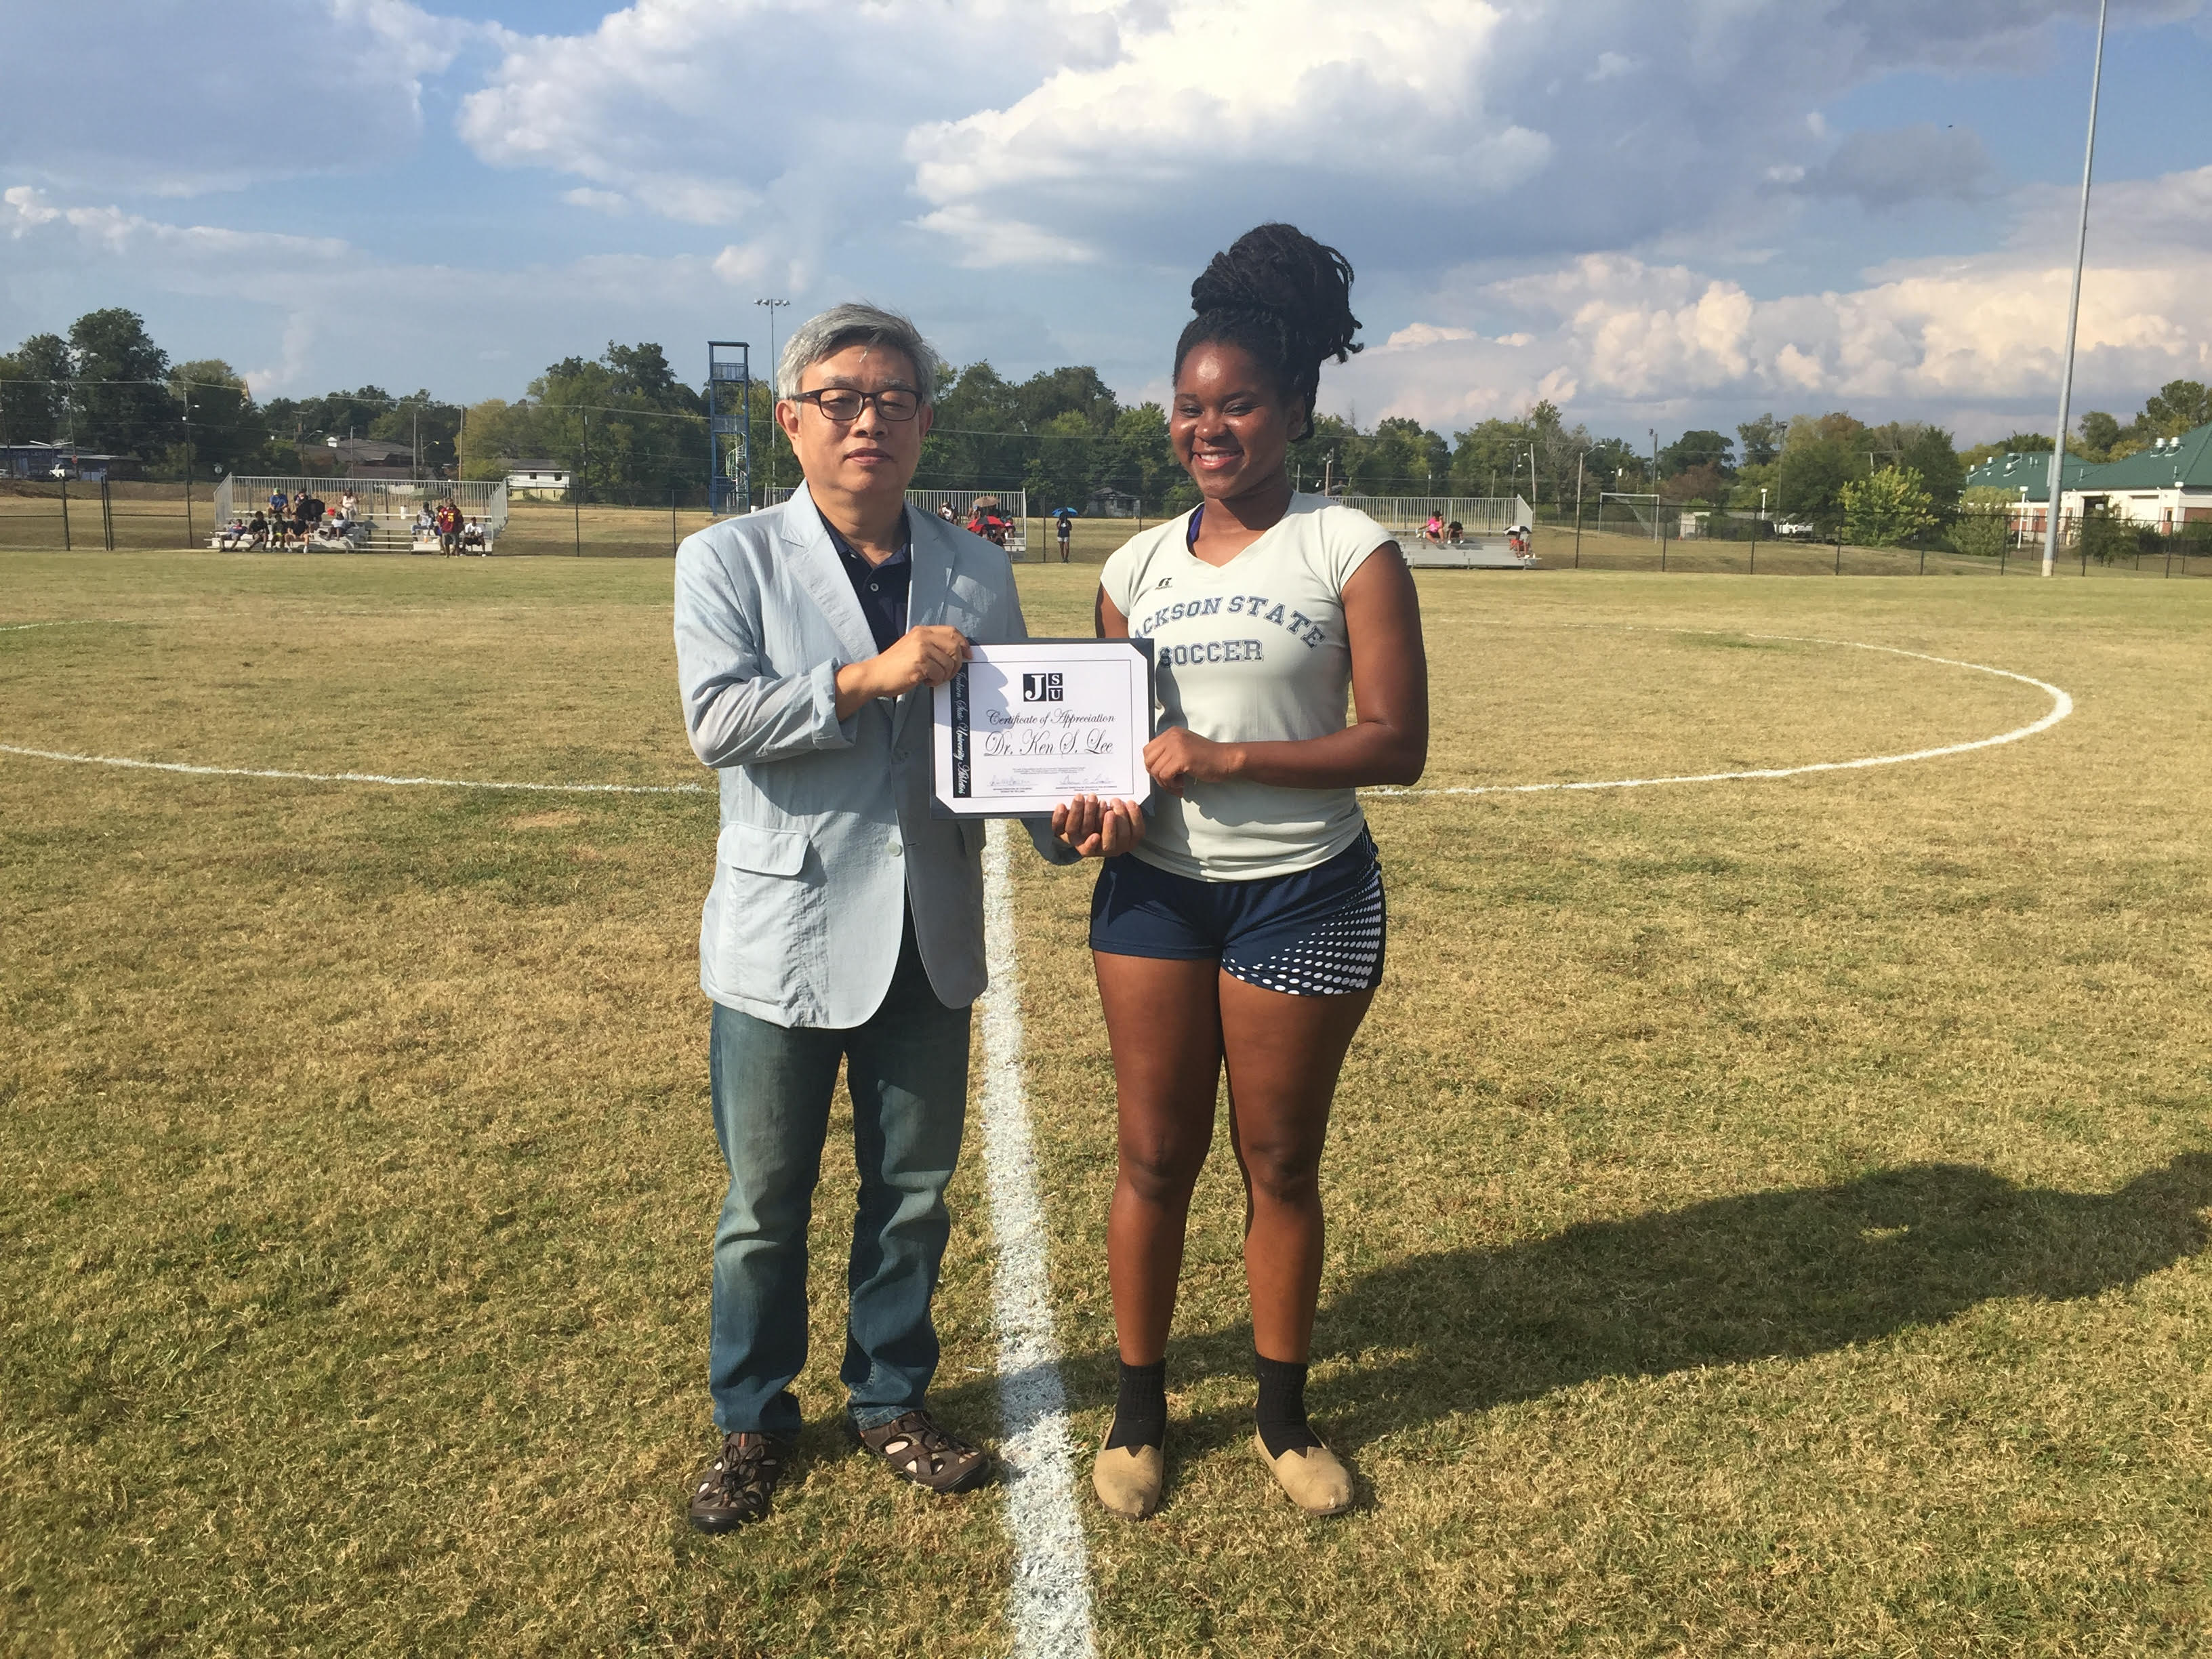 Professor of the Game - 09/25/15